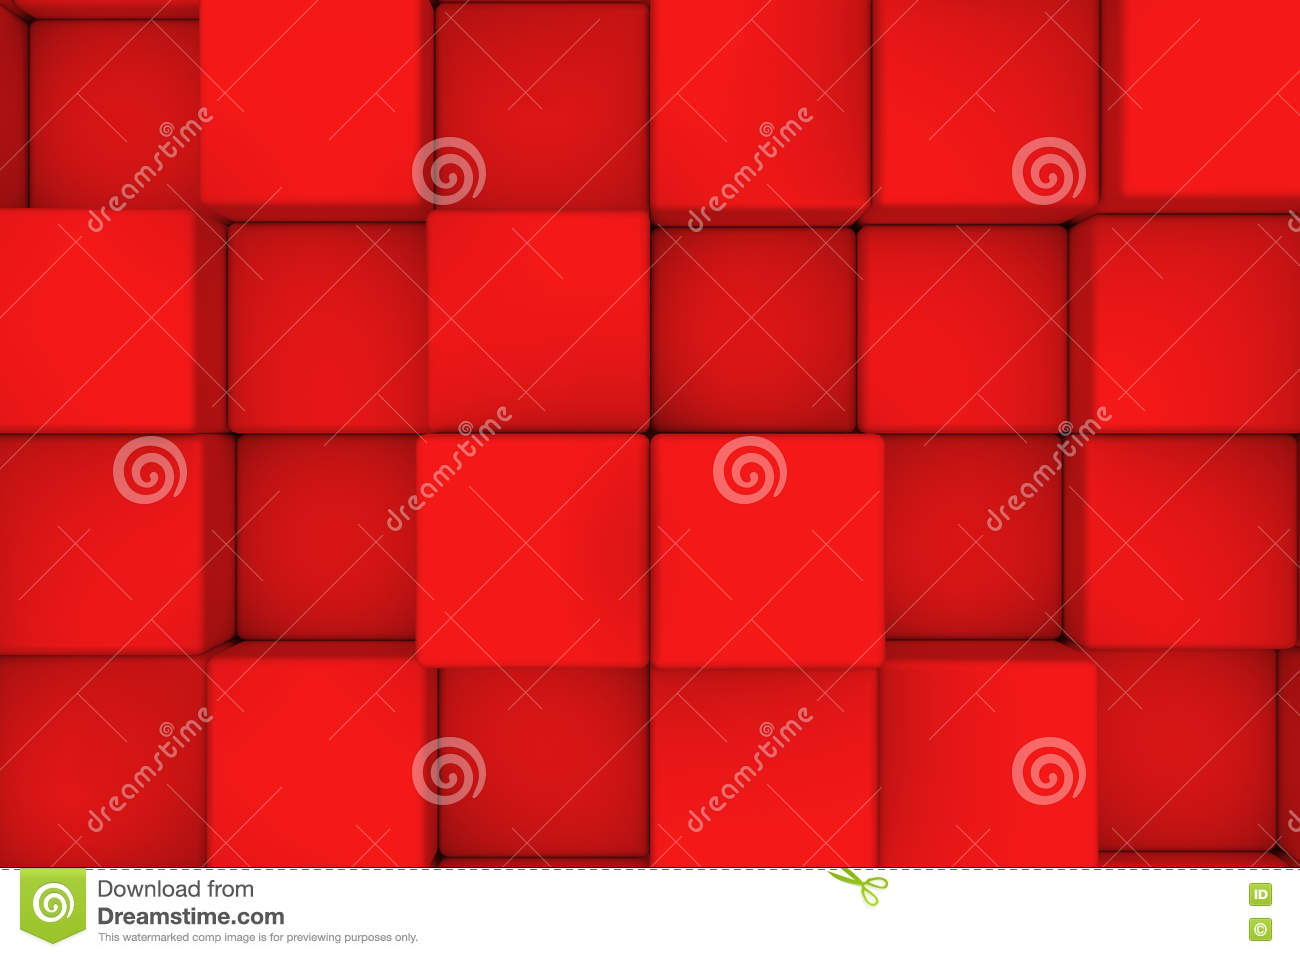 Wall of red cubes. Abstract background